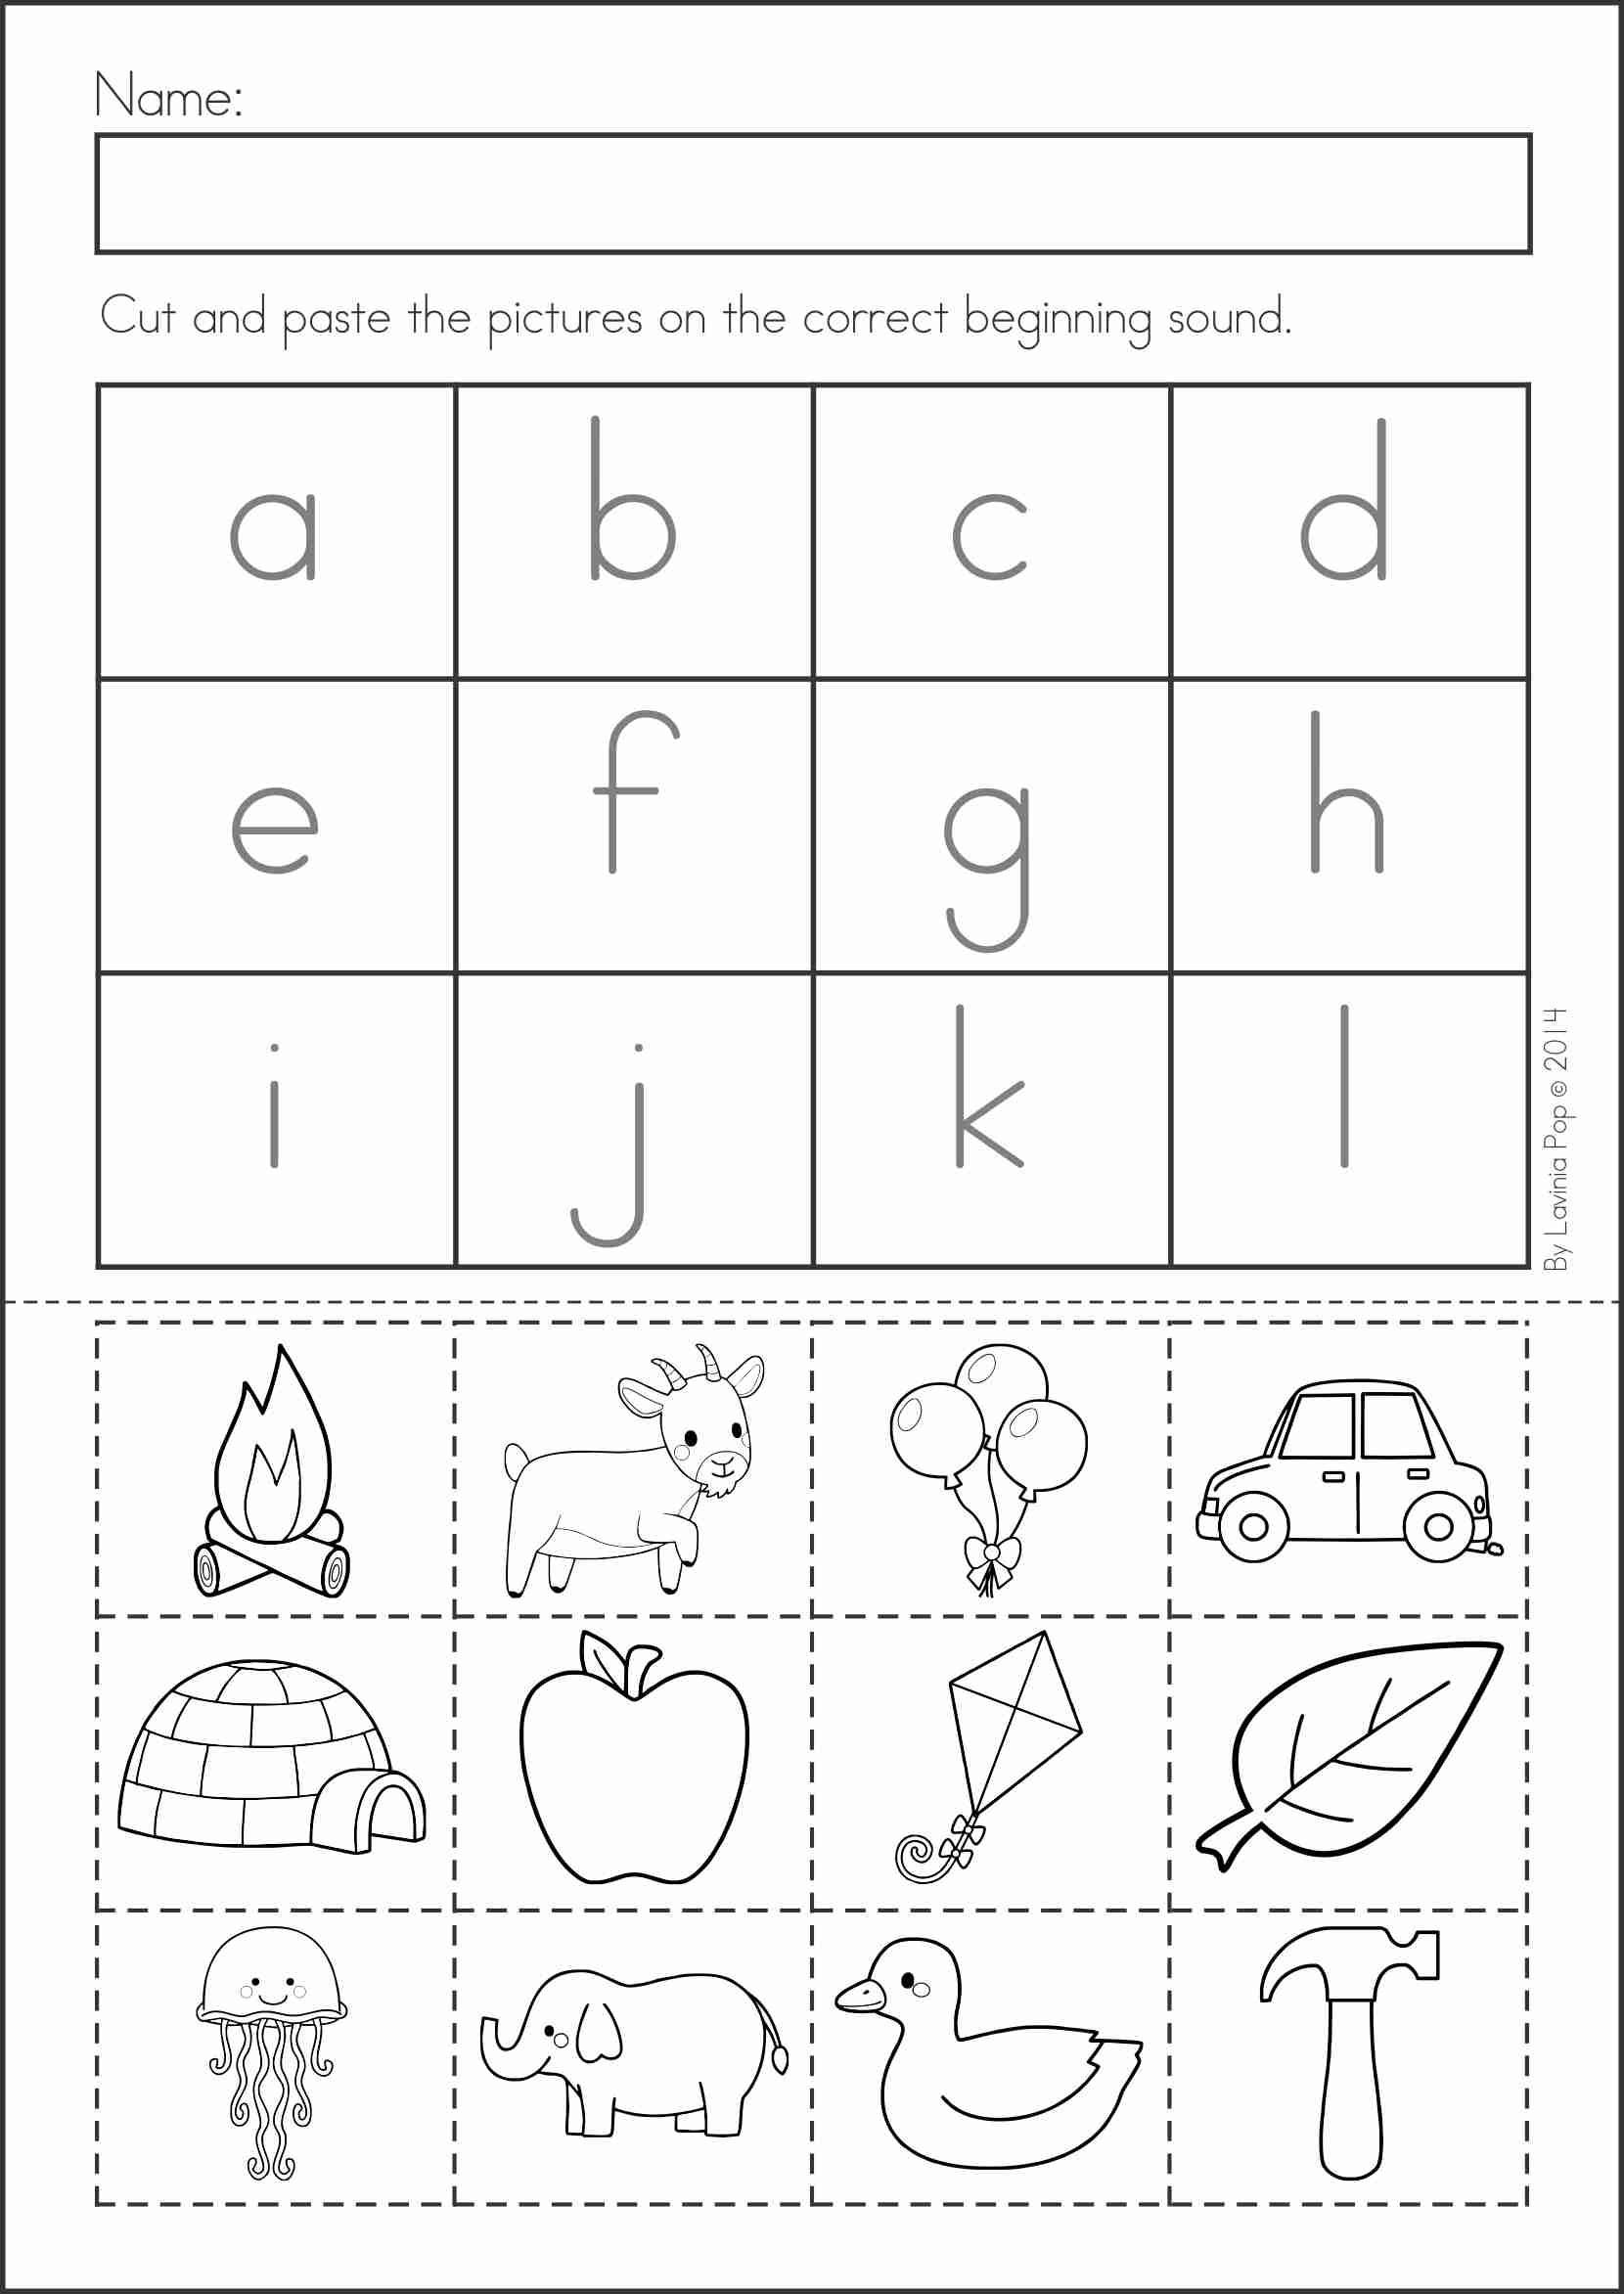 worksheet Beginning Sounds Worksheets Cut And Paste summer review literacy worksheets math and kindergarten activities 104 pages a page from